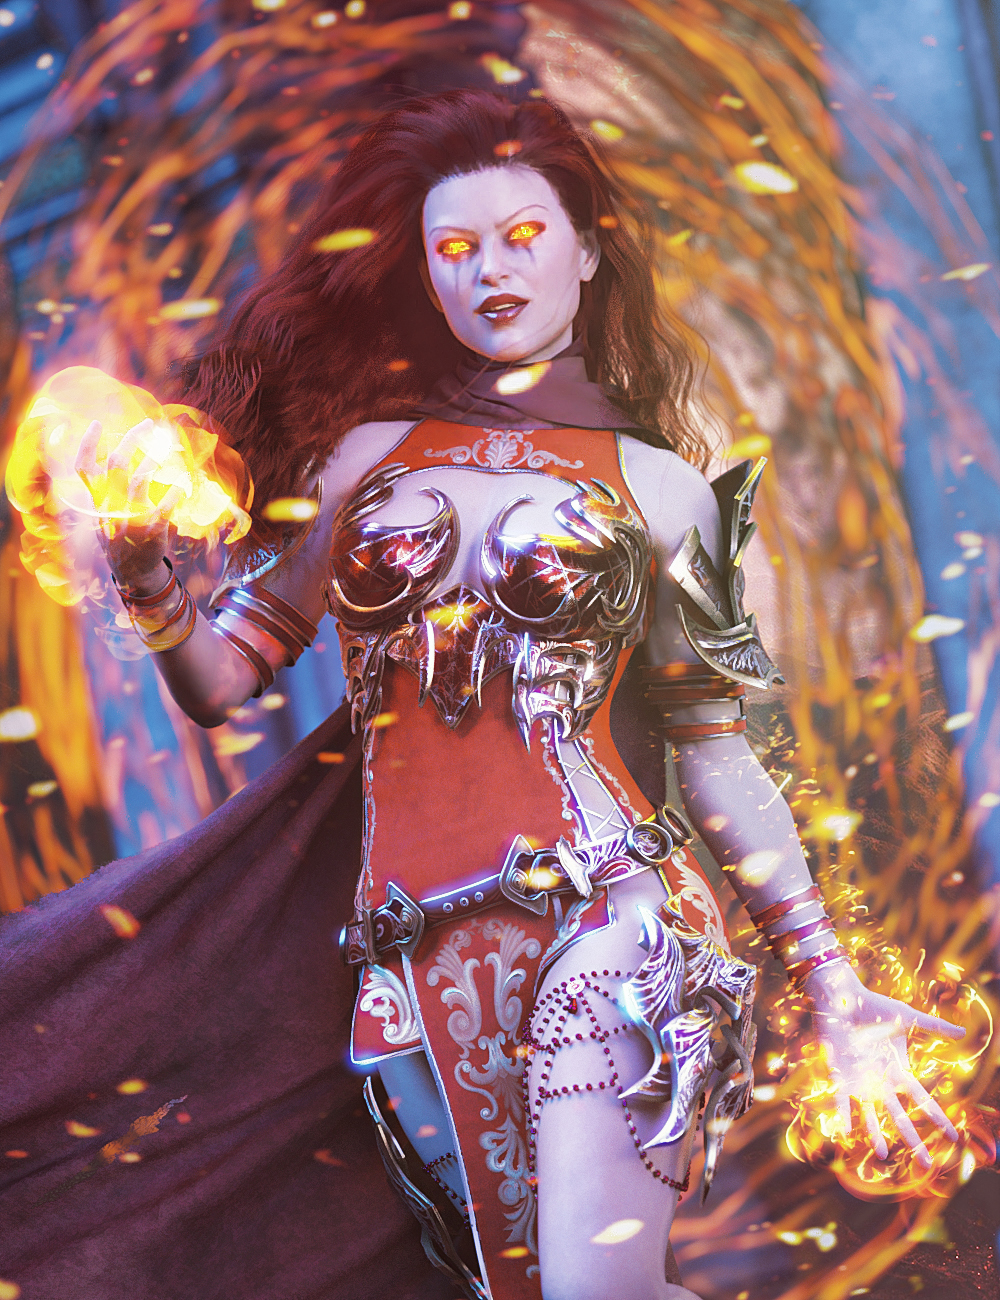 PTF Magic! Shaders and Wearables for Genesis 3 and 8 by: PixelTizzyFit, 3D Models by Daz 3D